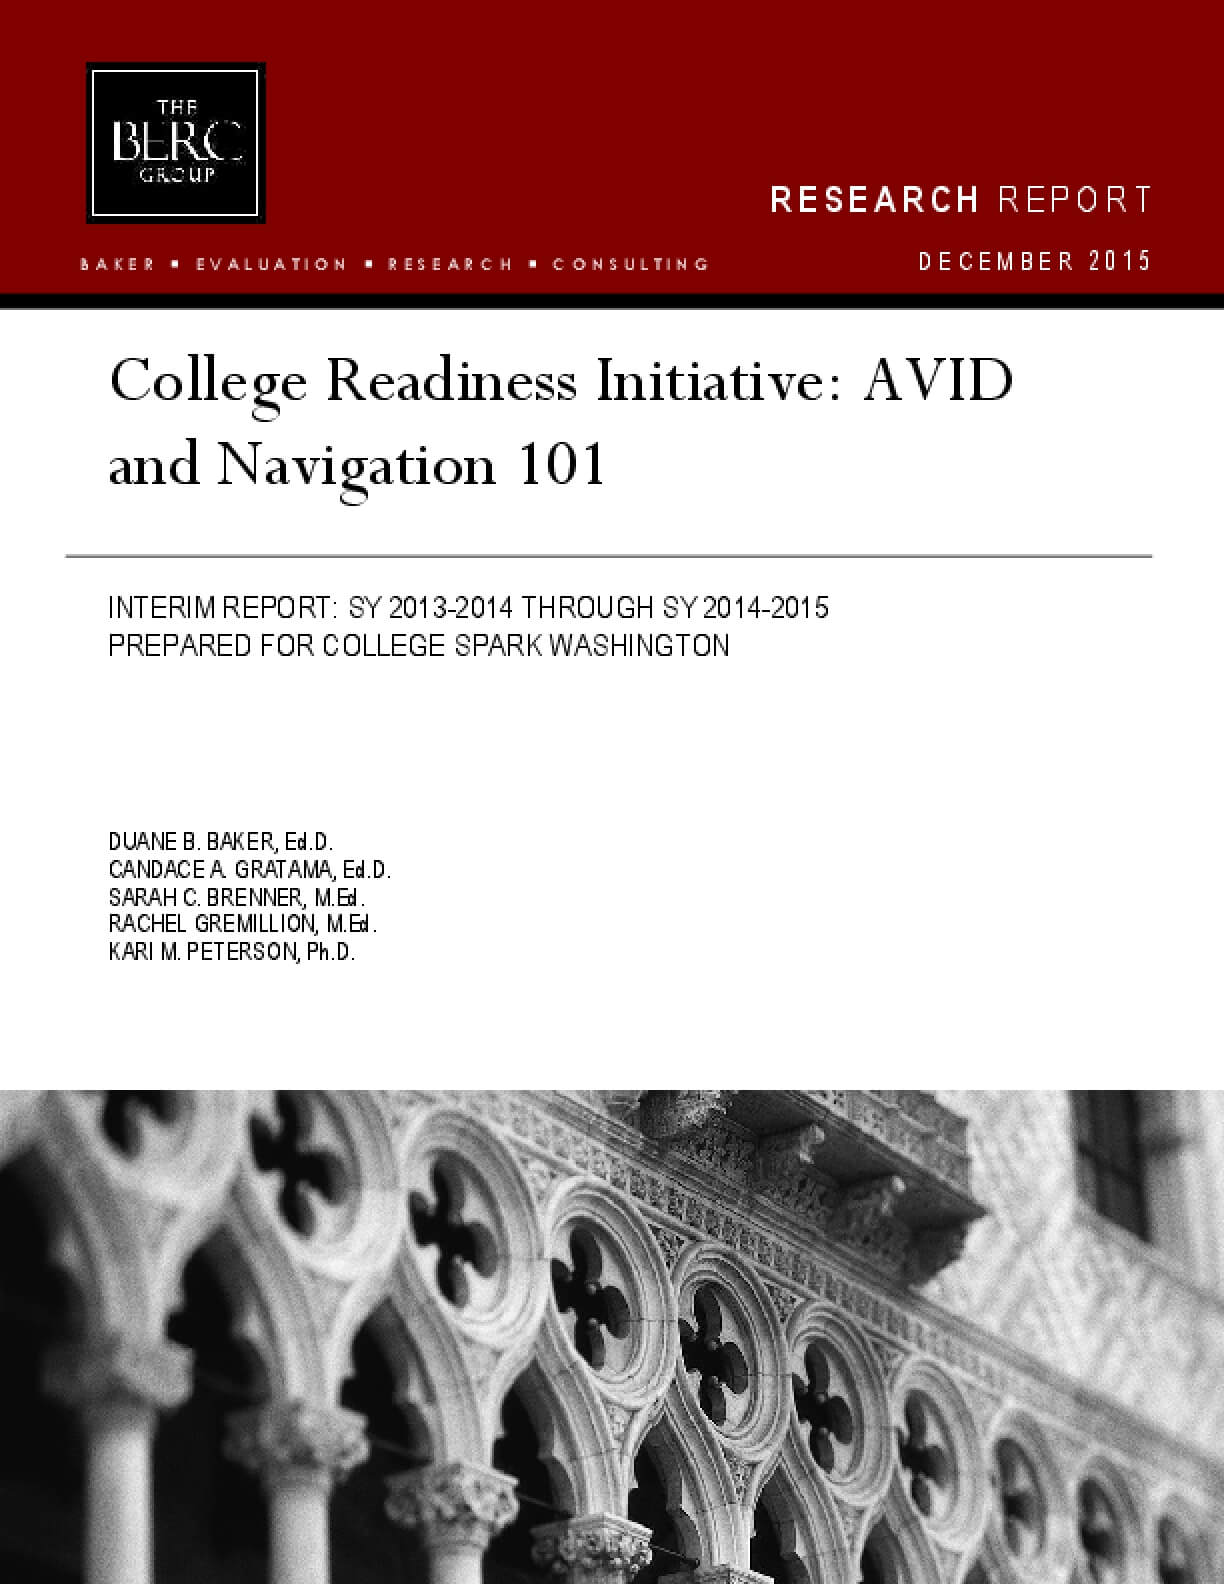 College Readiness Initiative: AVID and Navigation 101